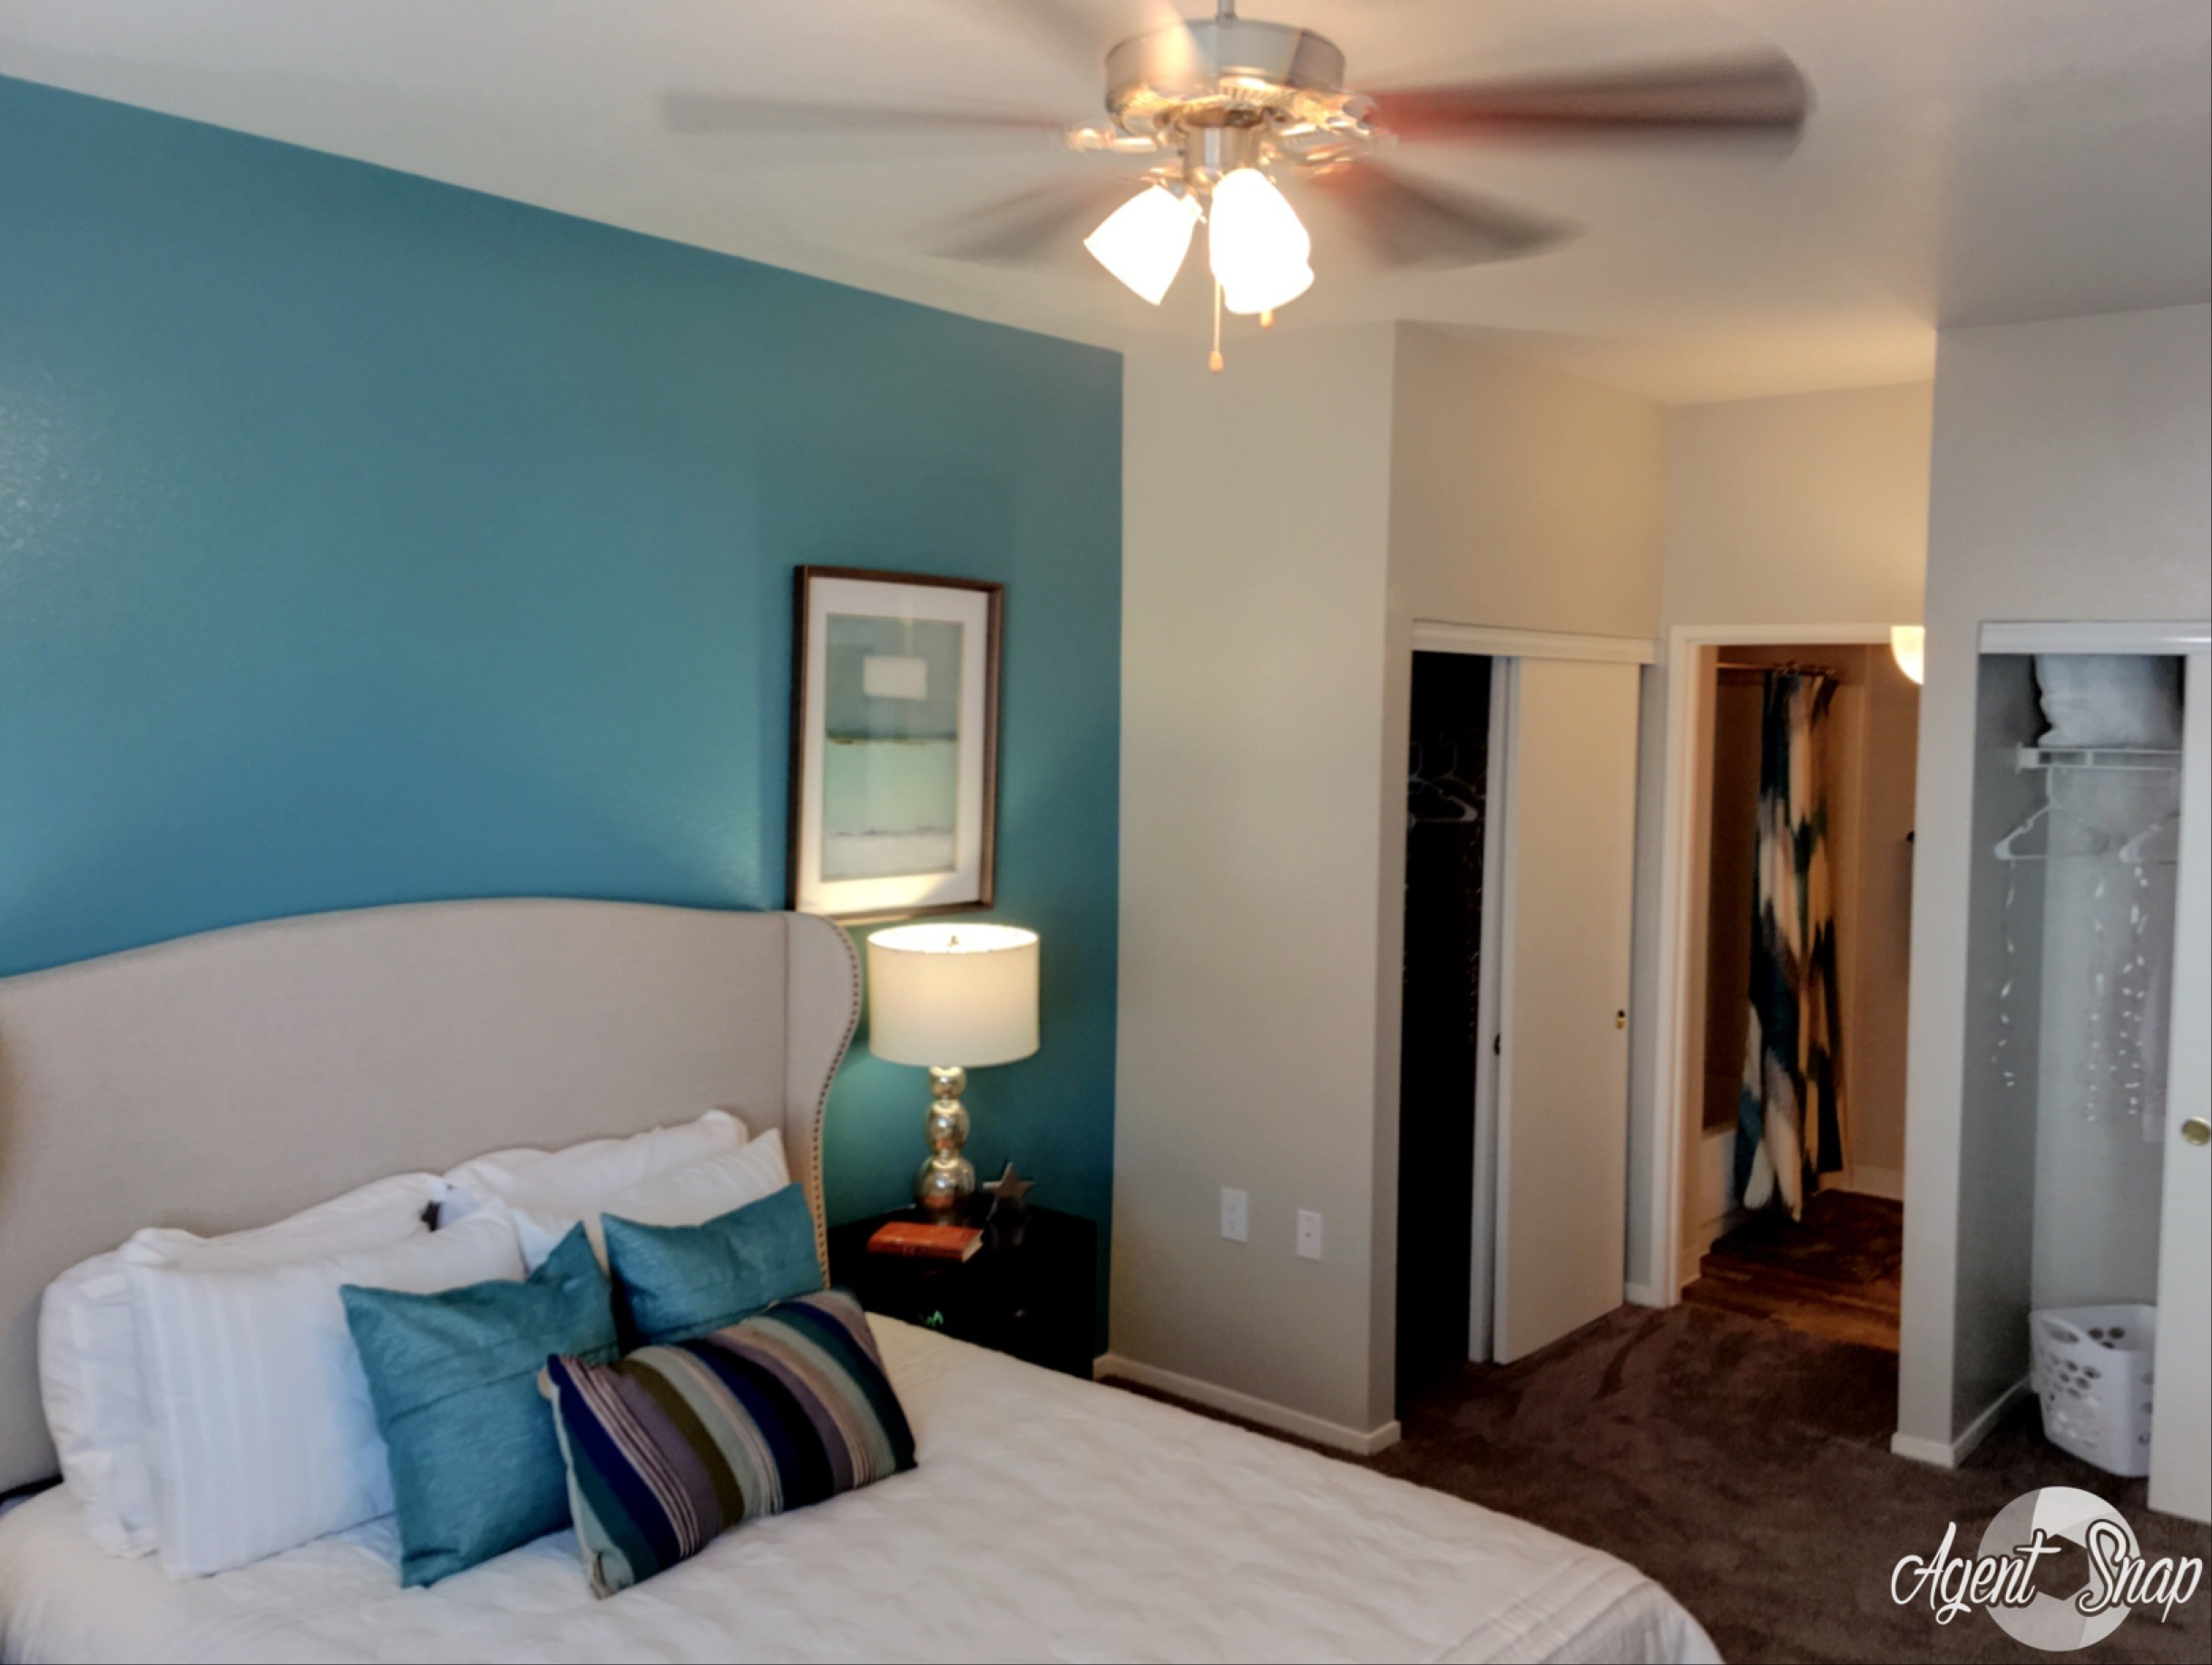 Bedroom with Extra Storage, Prelude at the Park, Apartment Homes on East Lake Mead Pkwy